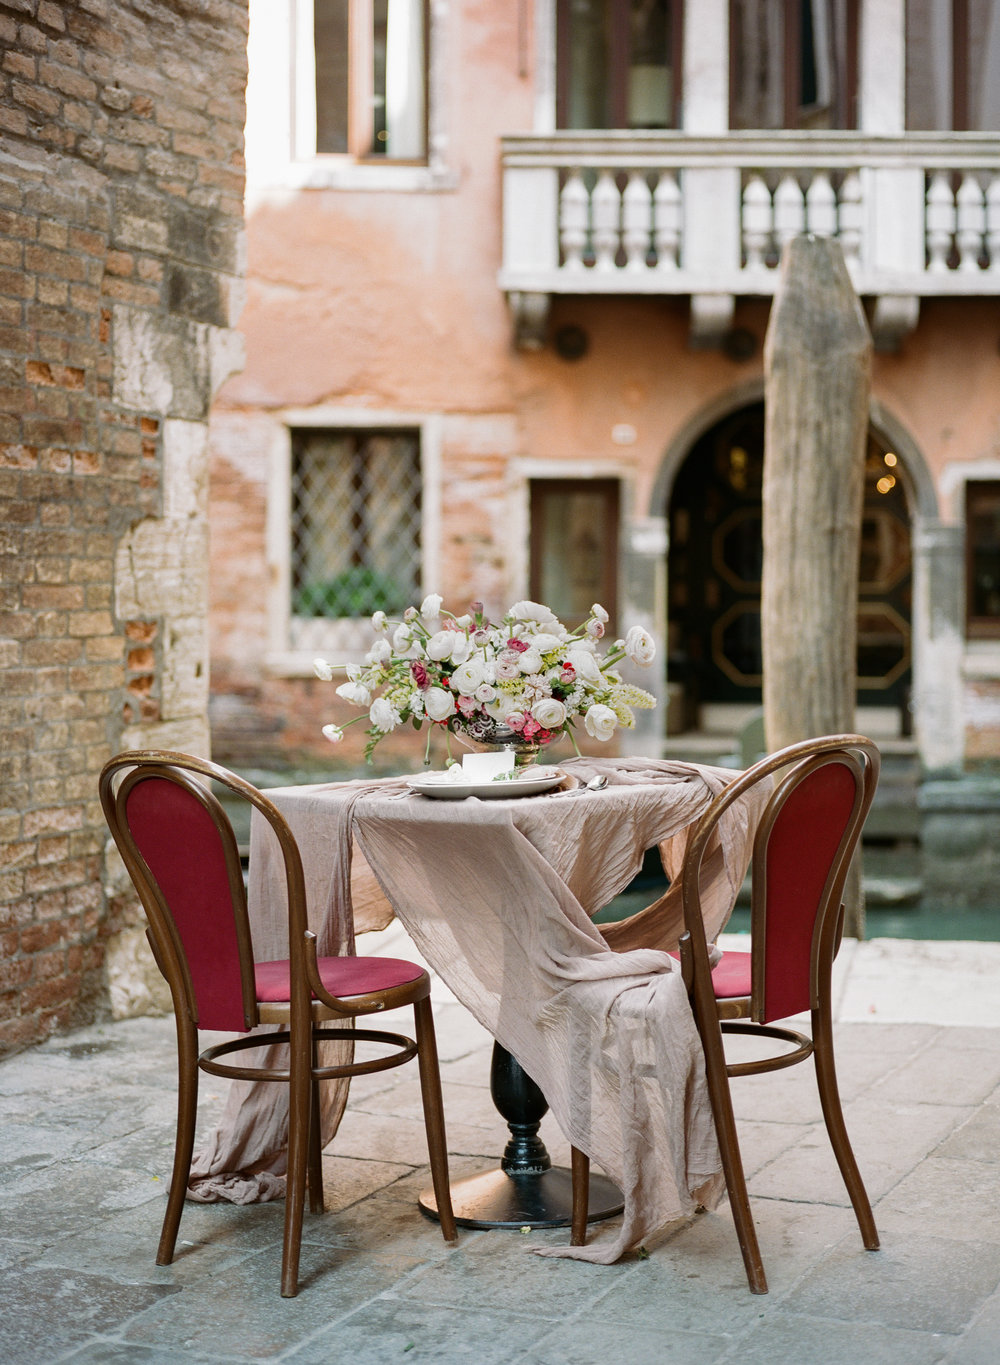 Sapphire Events | Archetype Studios | Venice Inspiration | Red and Pink wedding | Sweetheart Table Ideas | Outdoor Wedding | Charleston Wedding | Wedding Planning Tips | What to do after the ring | Engagement Inspiration | Wedding Planning Inspiration | Best Wedding Planner in New Orleans | Essential Engagement Tips